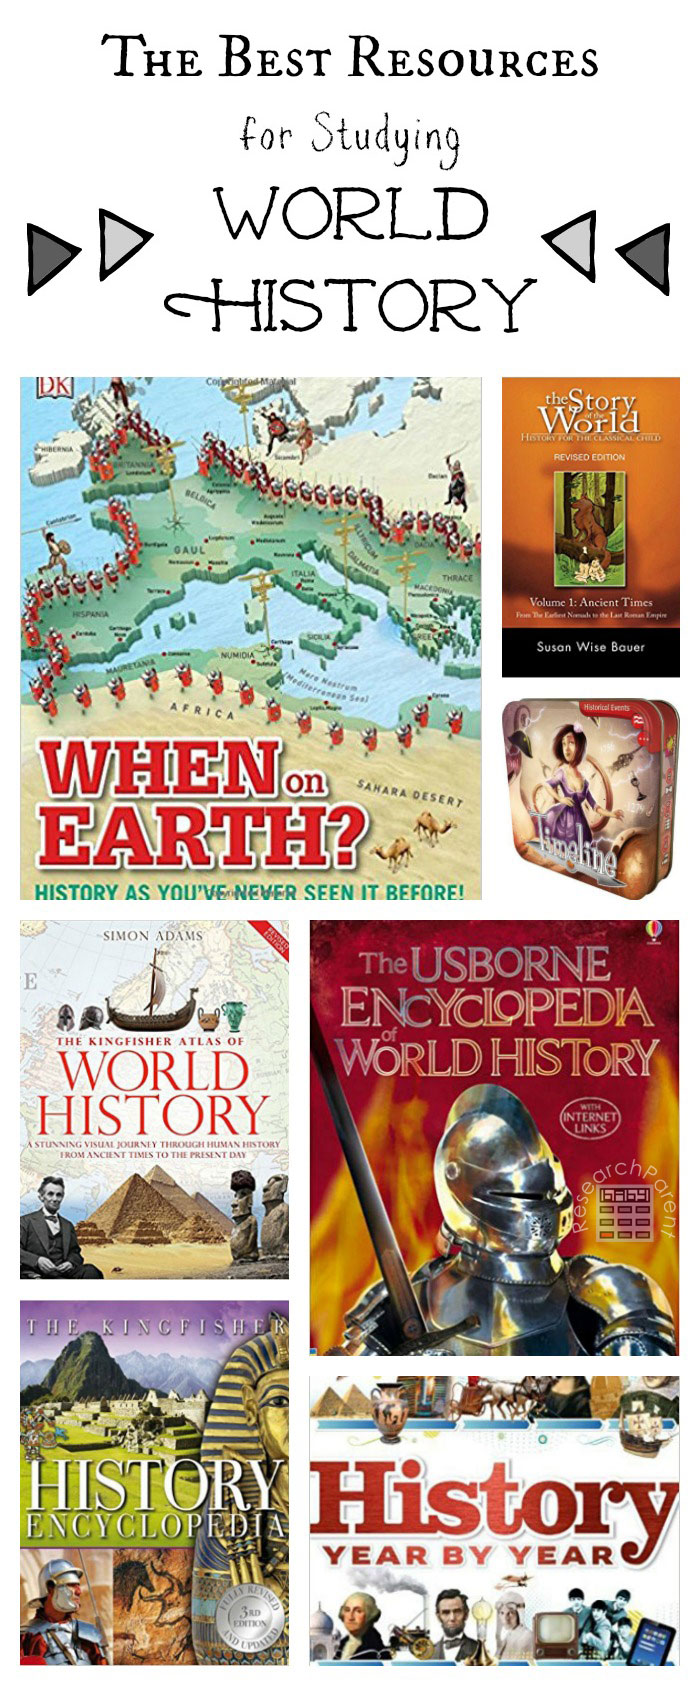 Best Resources for Studying Ancient Egypt - Ever-growing list containing several of the best books, games, and media for a wide variety of age ranges including elementary and middle school.